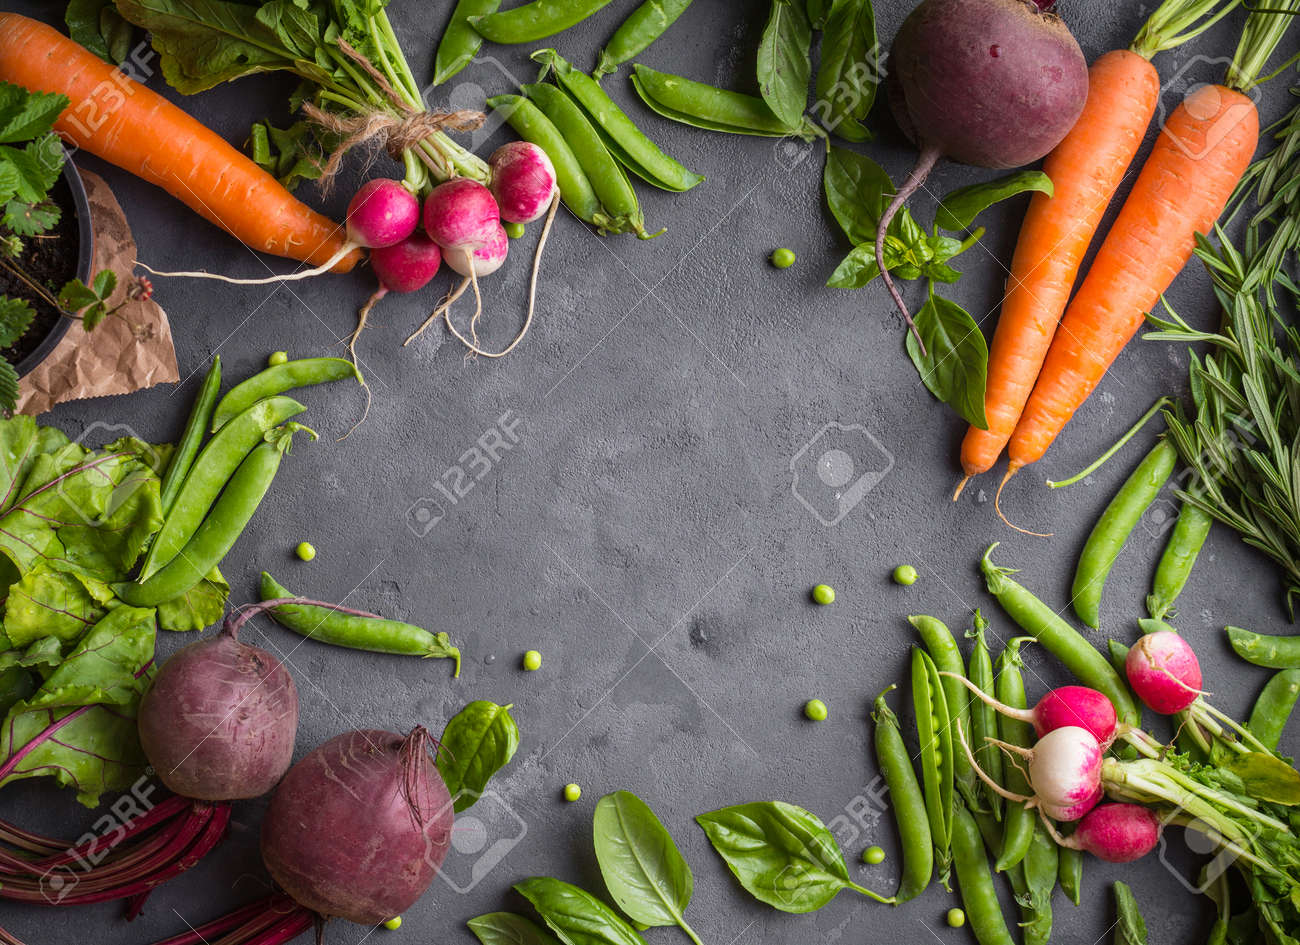 Fresh vegetables on rustic concrete background. Carrot, beet, radish, green pea, herbs. Harvest/gardening concept. Healthy food. Vegetarianism. Clean eating. Space for text. Making salad ingredients - 84059739